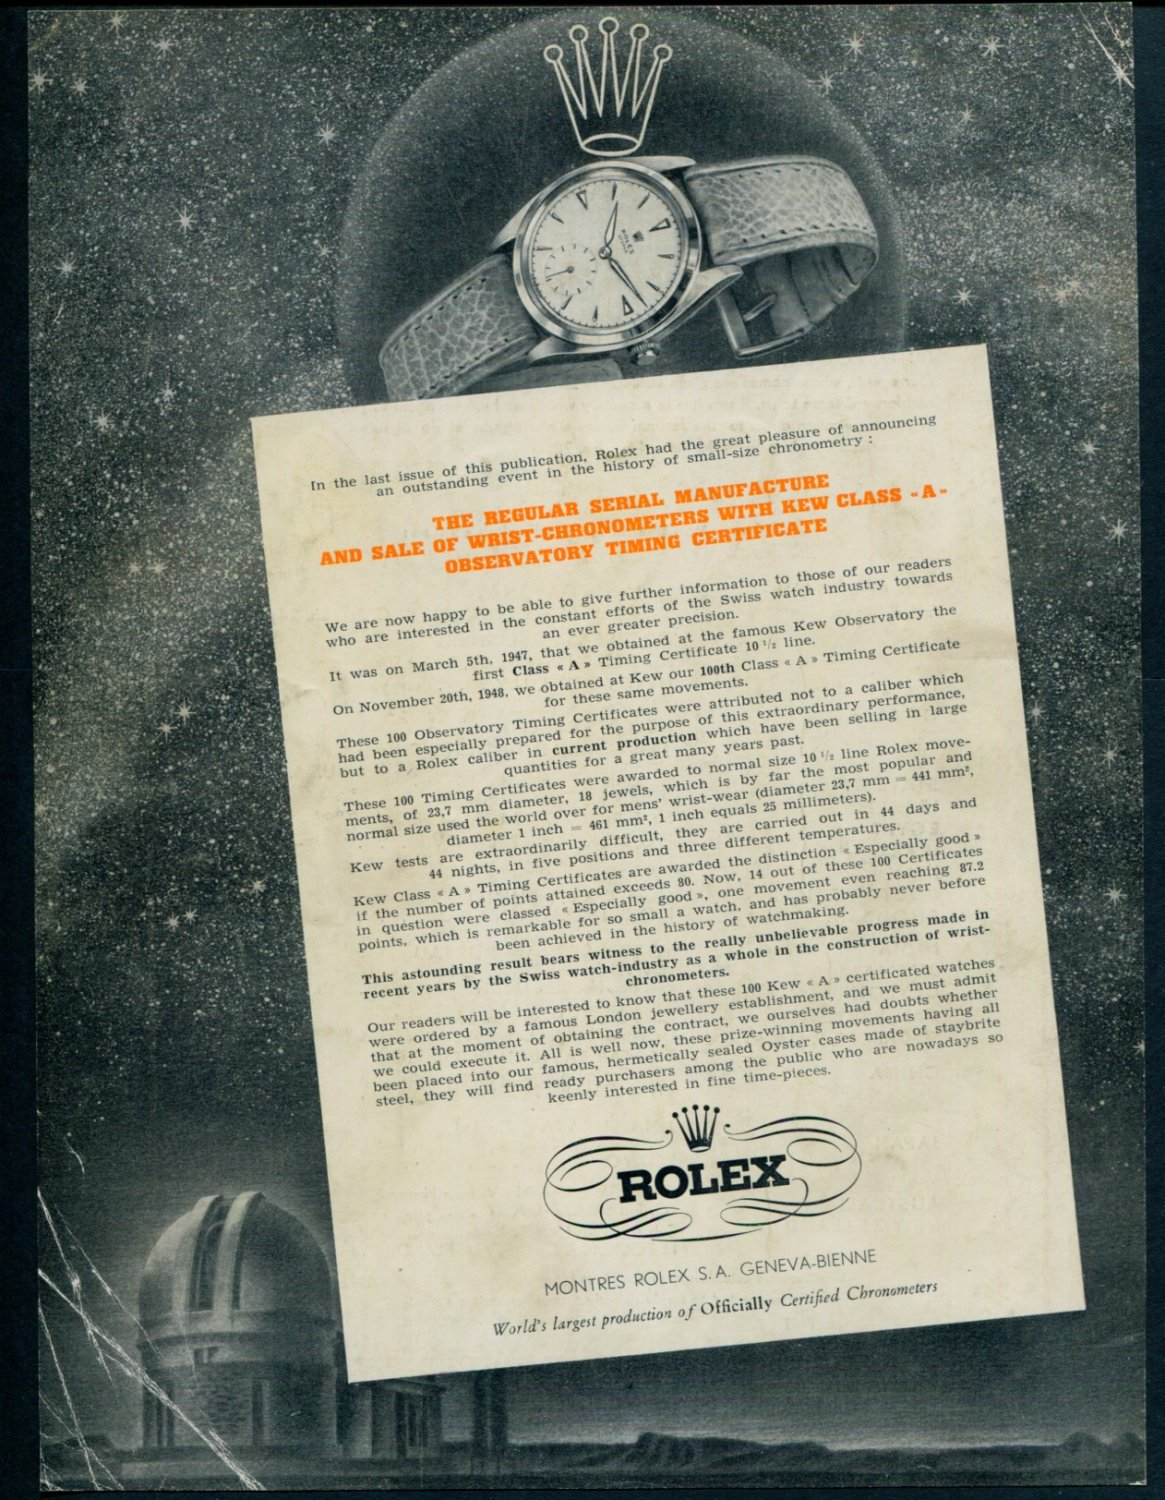 1949 Rolex Watch Company Switzerland Montres Rolex SA Advert 1949 Swiss Ad Suisse Advert